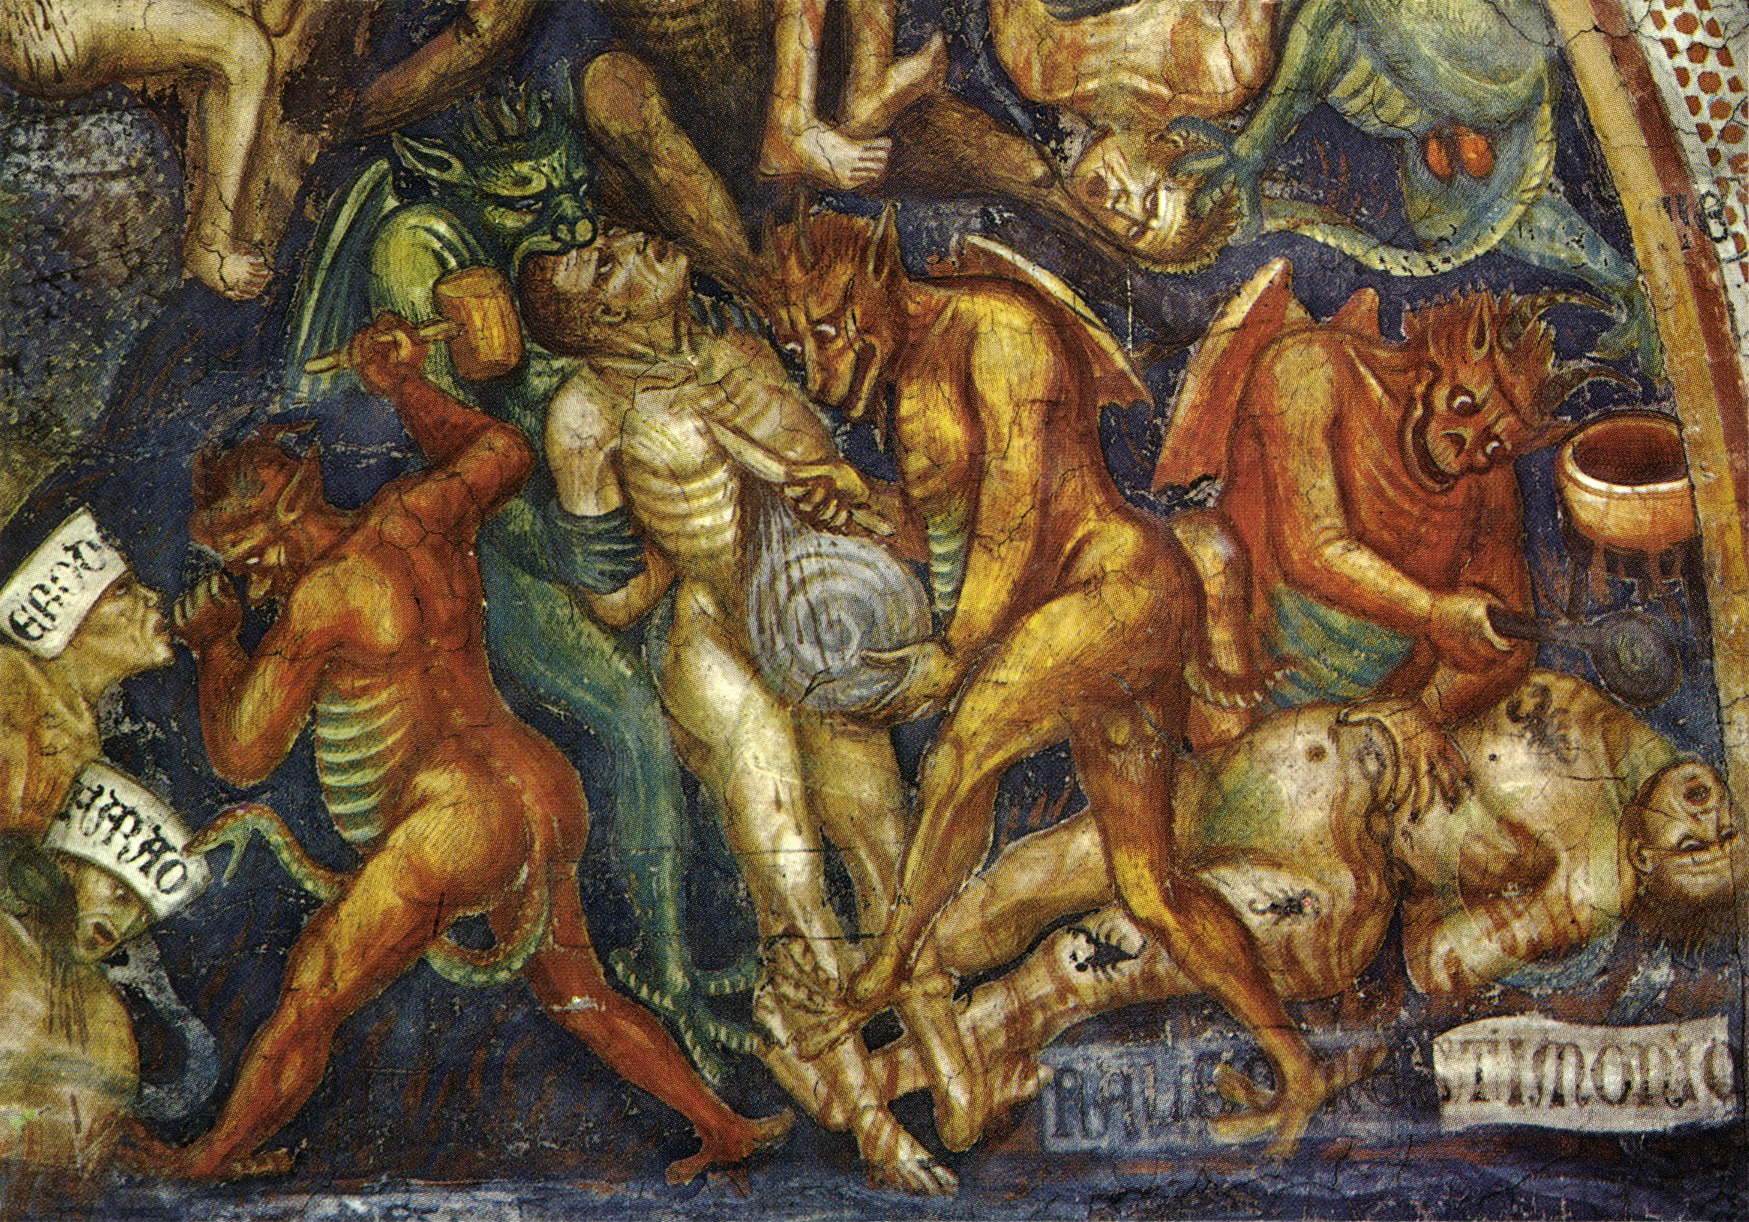 taddeo-di-bartolo-the-last-judgment-detail-of-envy-c1394